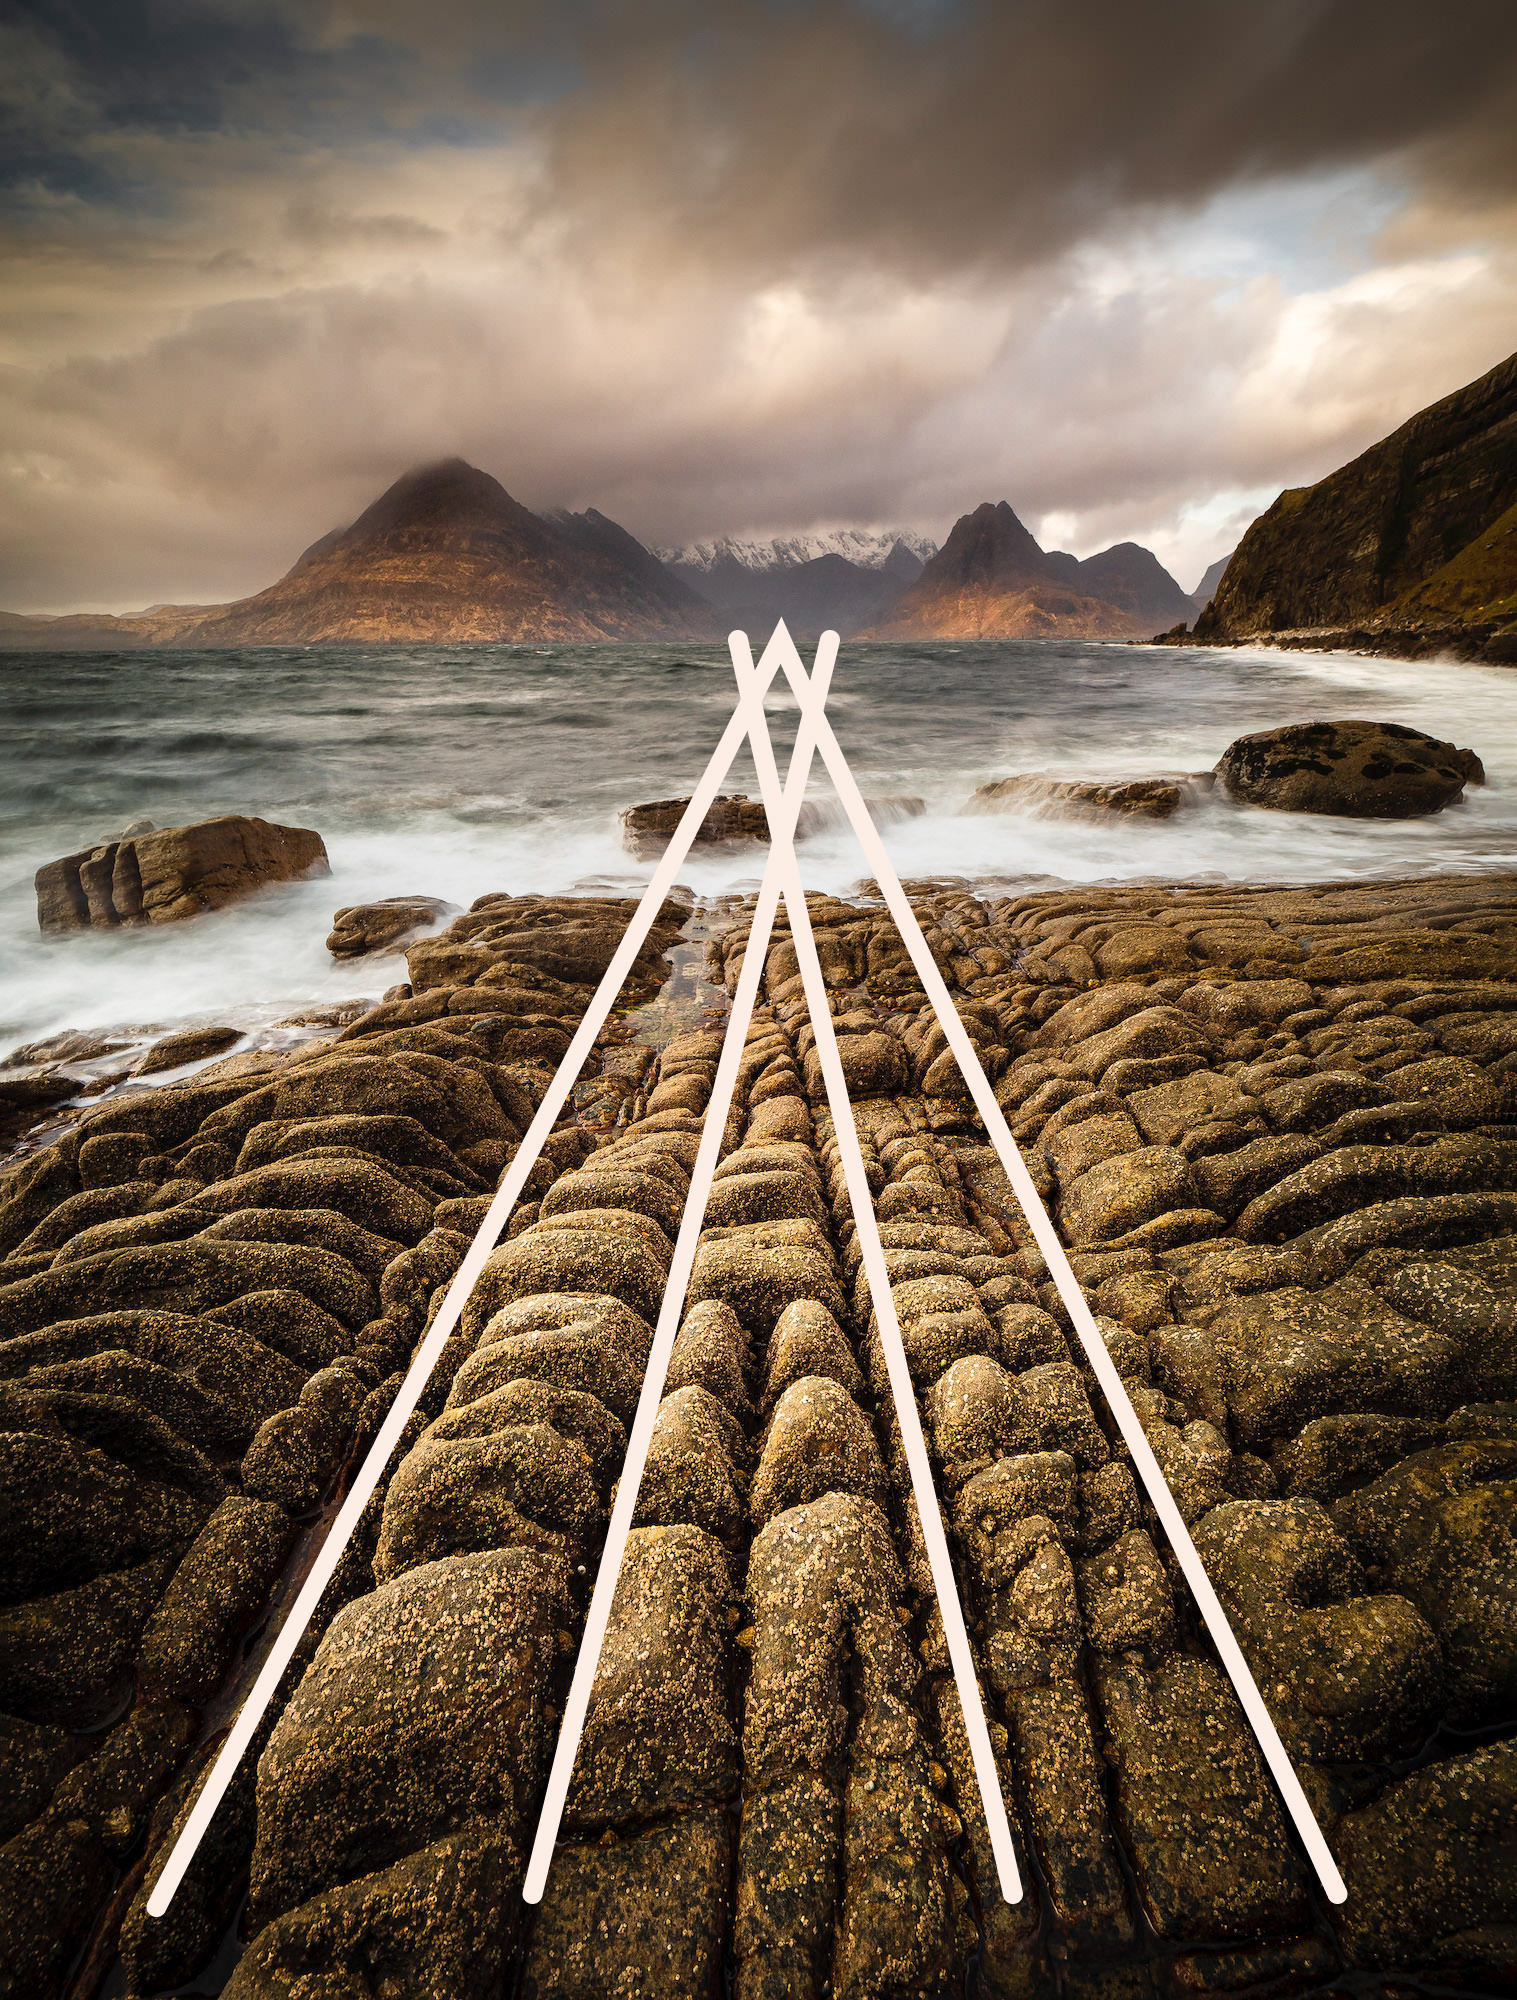 Lines in the rocks at Elgol leading to the Black Cullin mountains across the bay with added leading lines to show the compositional technique